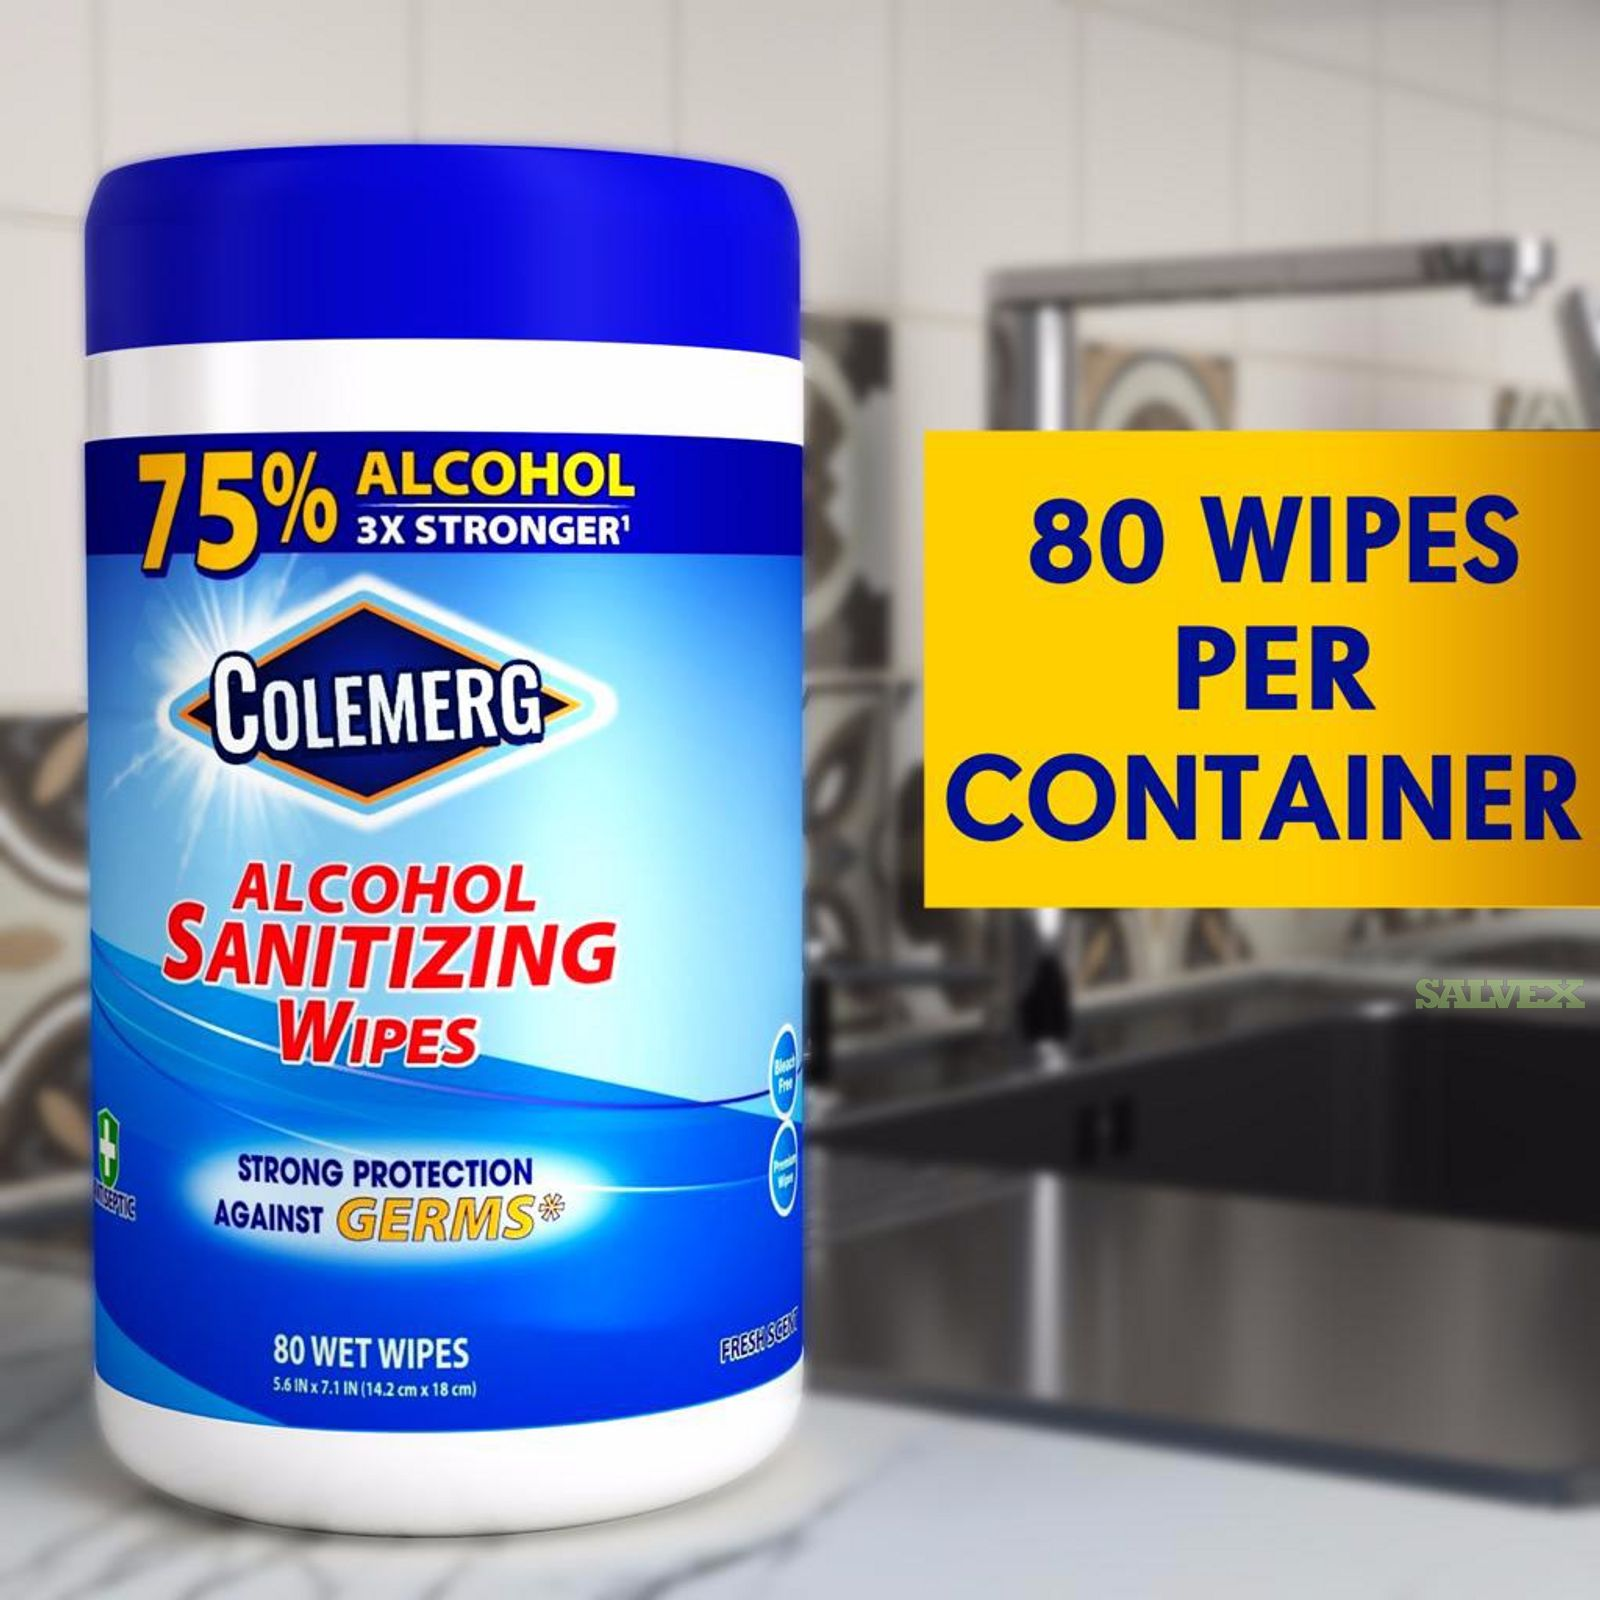 Colemerg Sanitizing Wipes  80 per Canister in NJ L2 (33,264 Units)